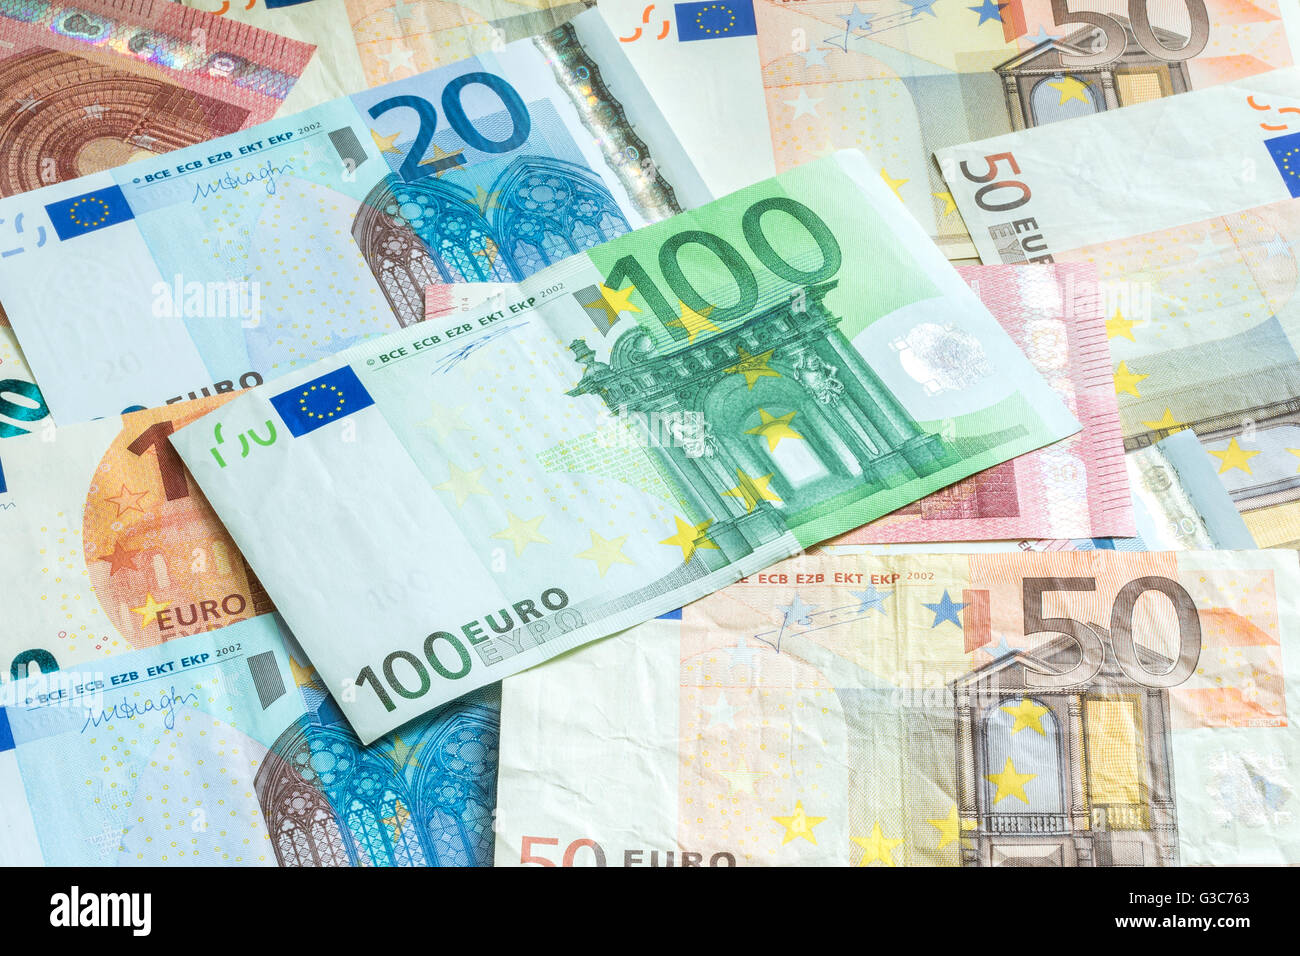 European Union Euro currency banknote close-up - Stock Image